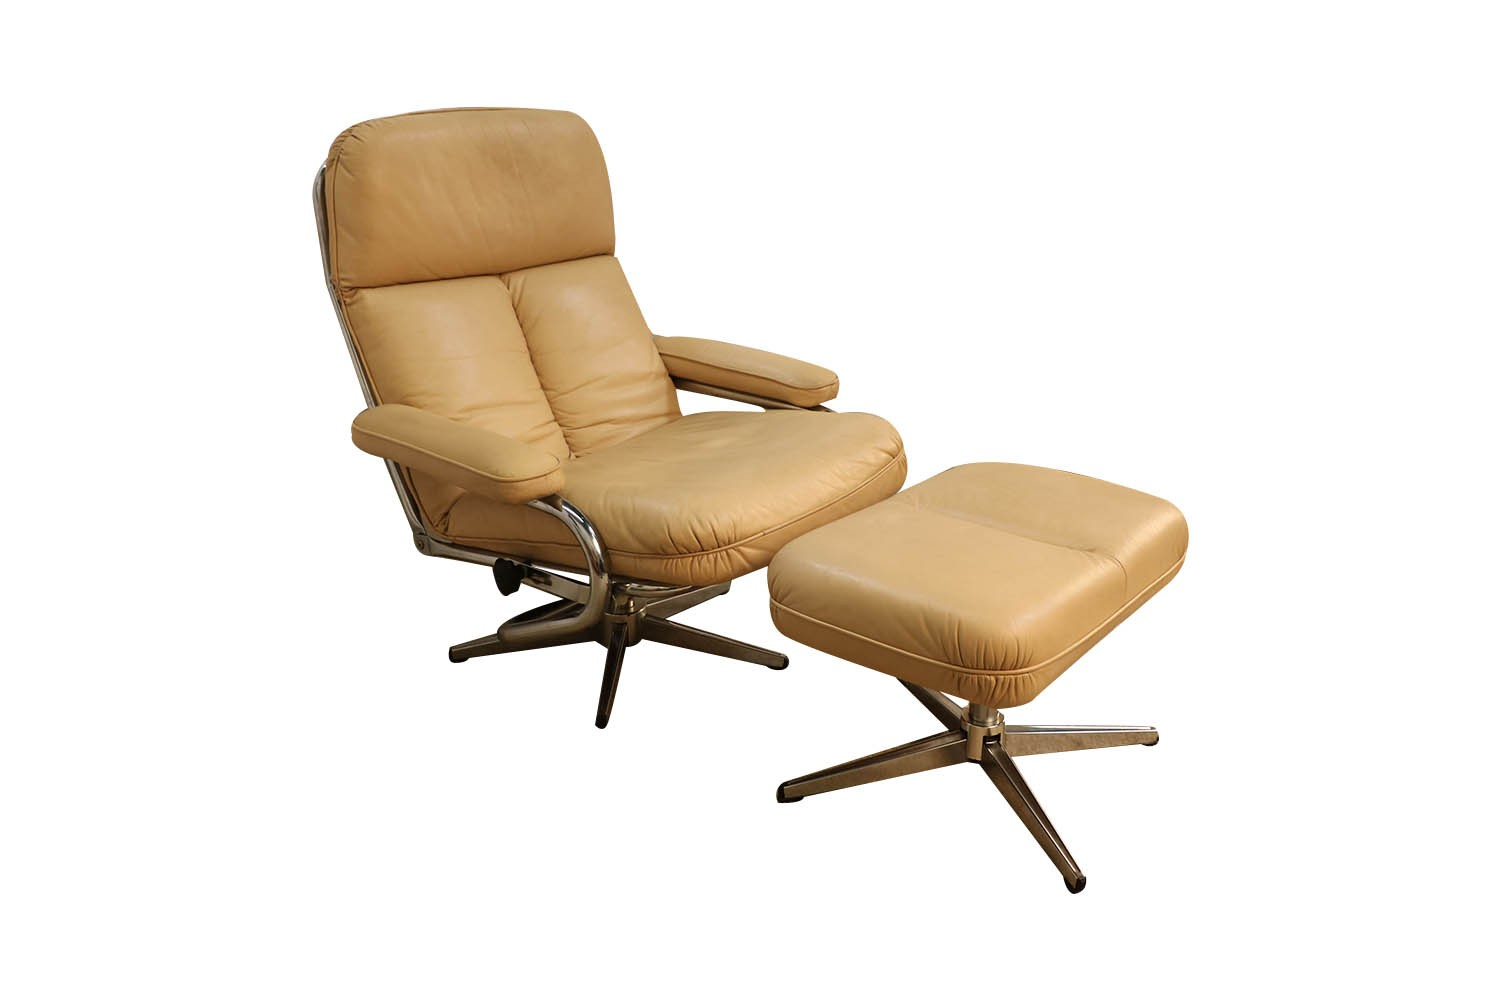 Super Modern Leather Recliner Chair Uwap Interior Chair Design Uwaporg